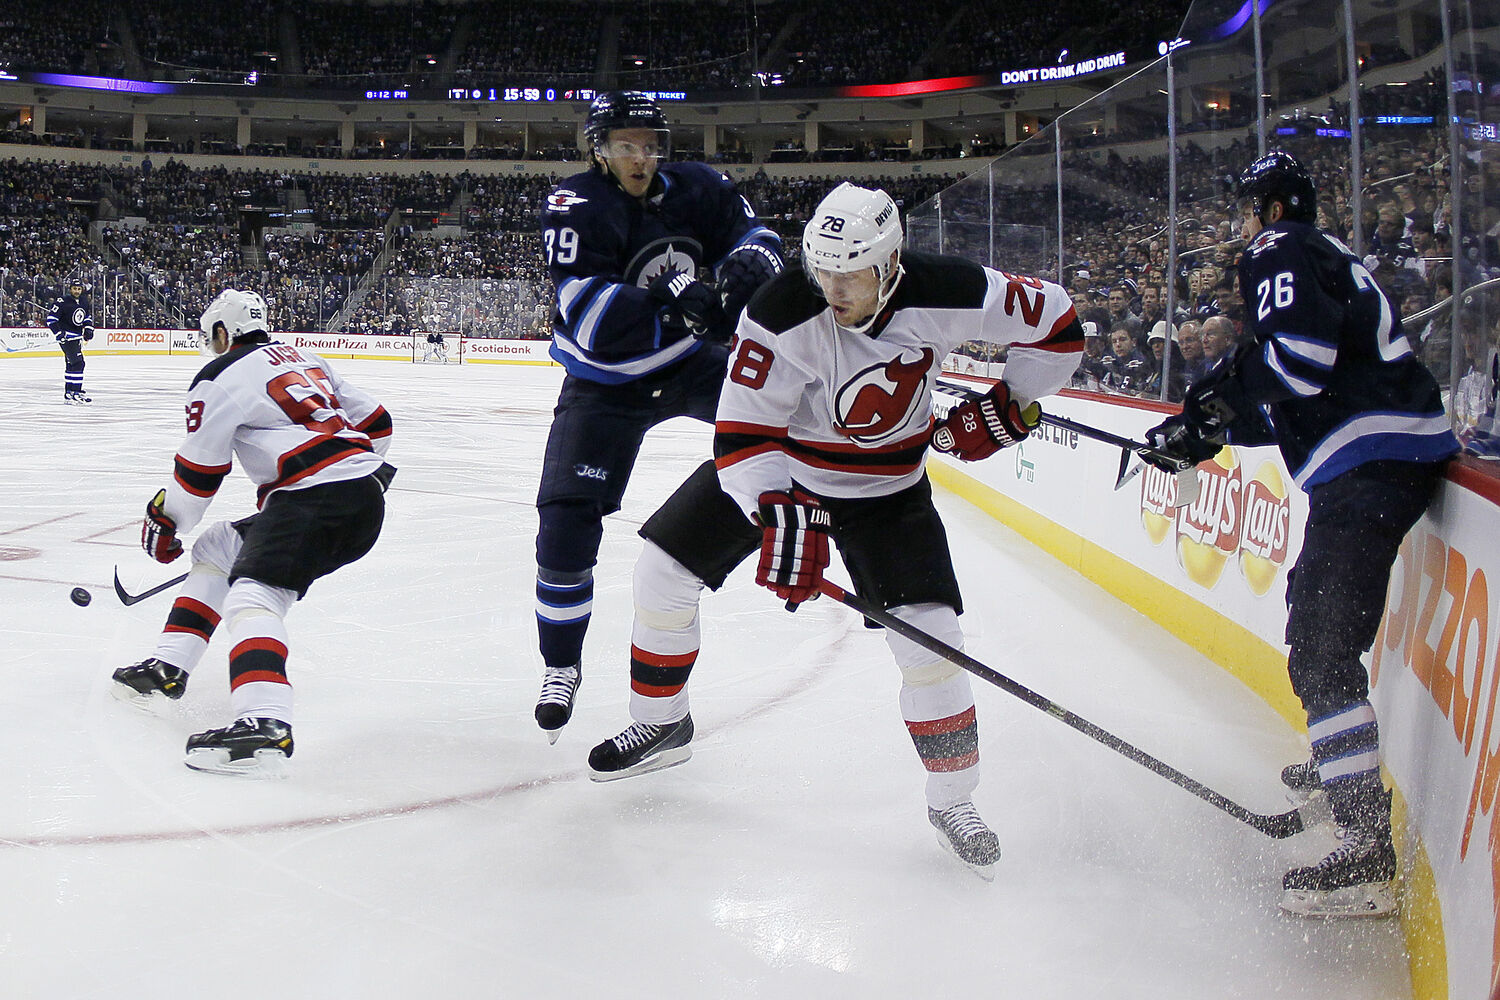 Toby Enstrom attempts to go around Anton Volchenkov during the second period.